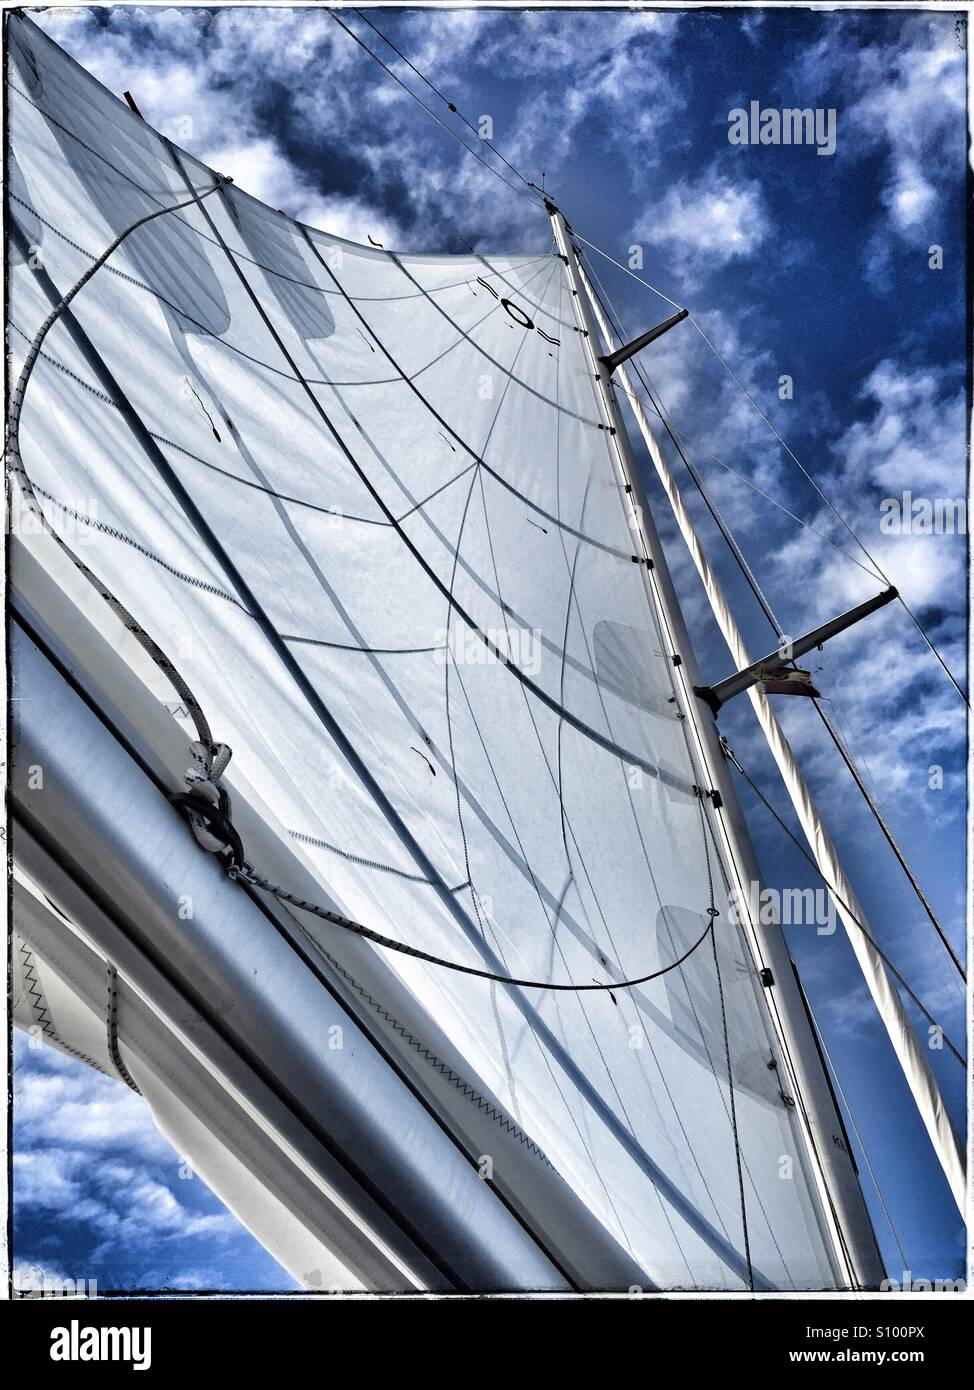 A full mainsail on a sailing yacht in the summer - Stock Image